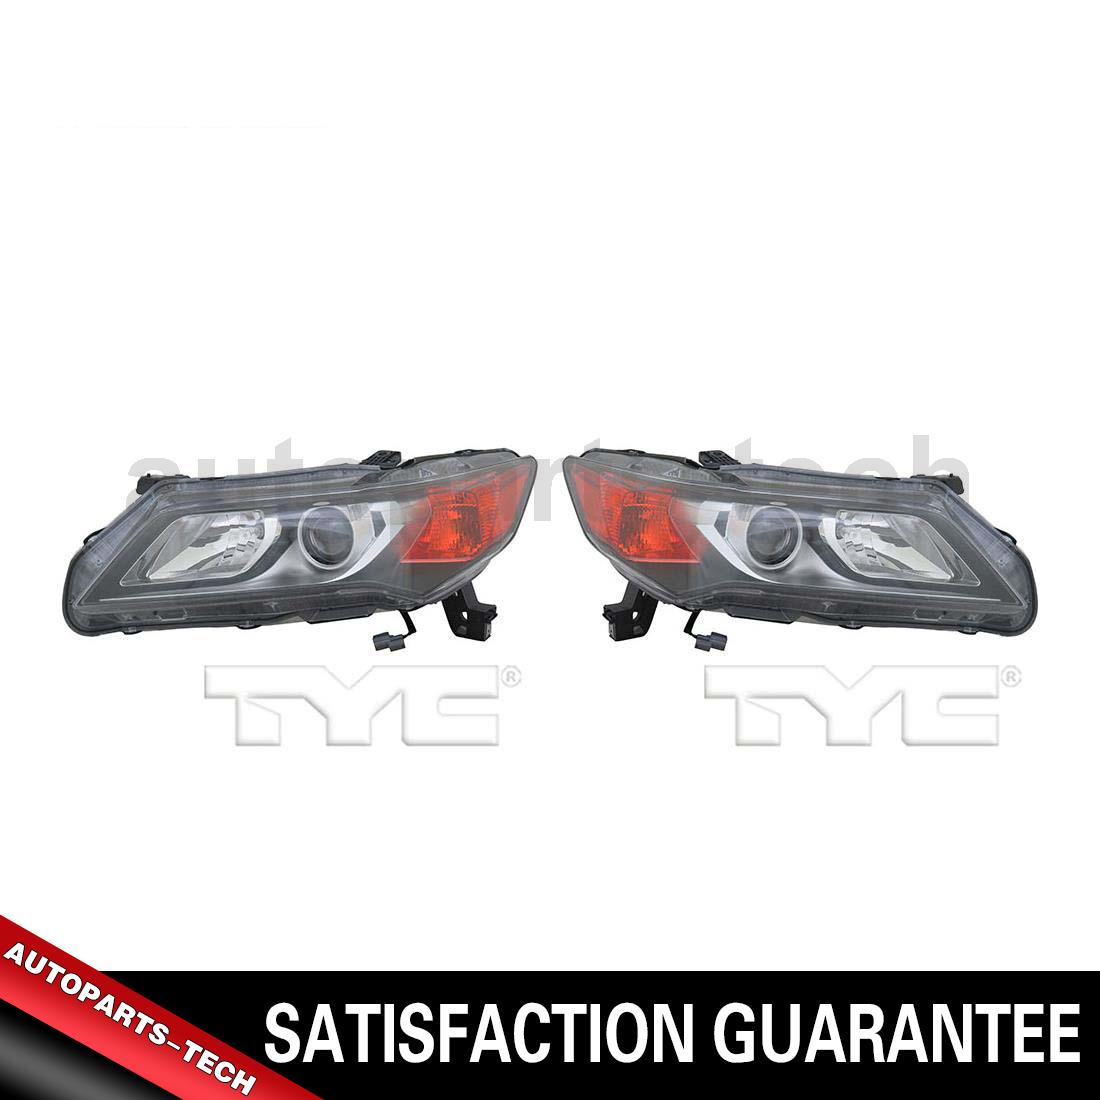 2x TYC Left Right Headlight Assembly For Acura ILX 2013